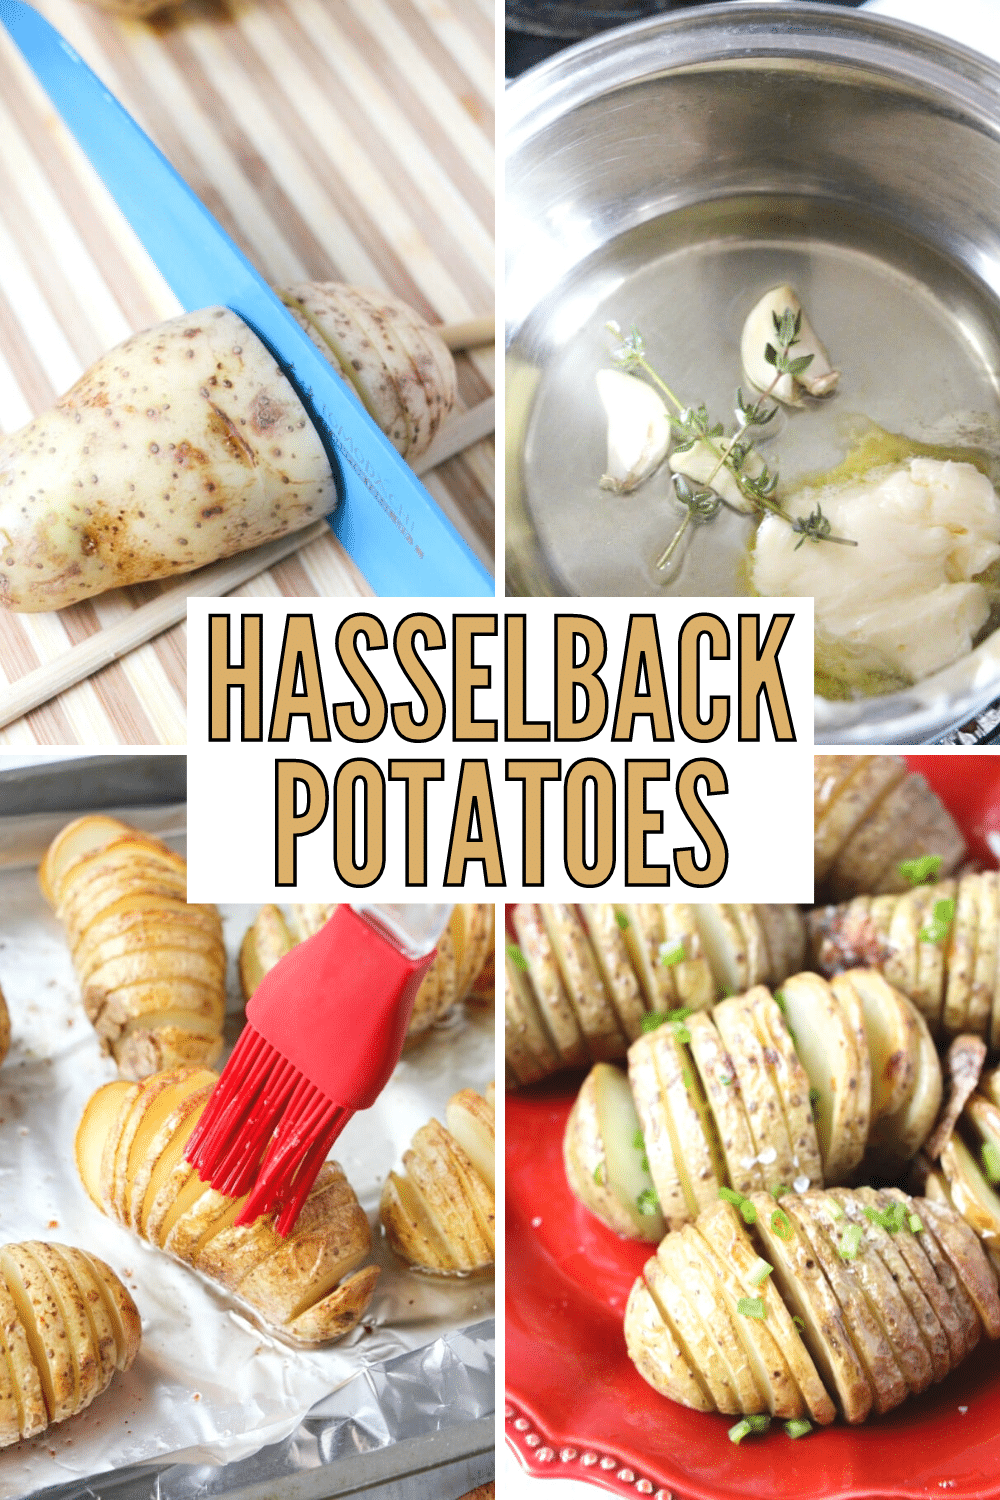 Hasselback Potatoes are a lovely side dish and actually easy to make. This is a great potato dish for holidays and when entertaining guests. #potatoes #sidedish #vegetables via @wondermomwannab